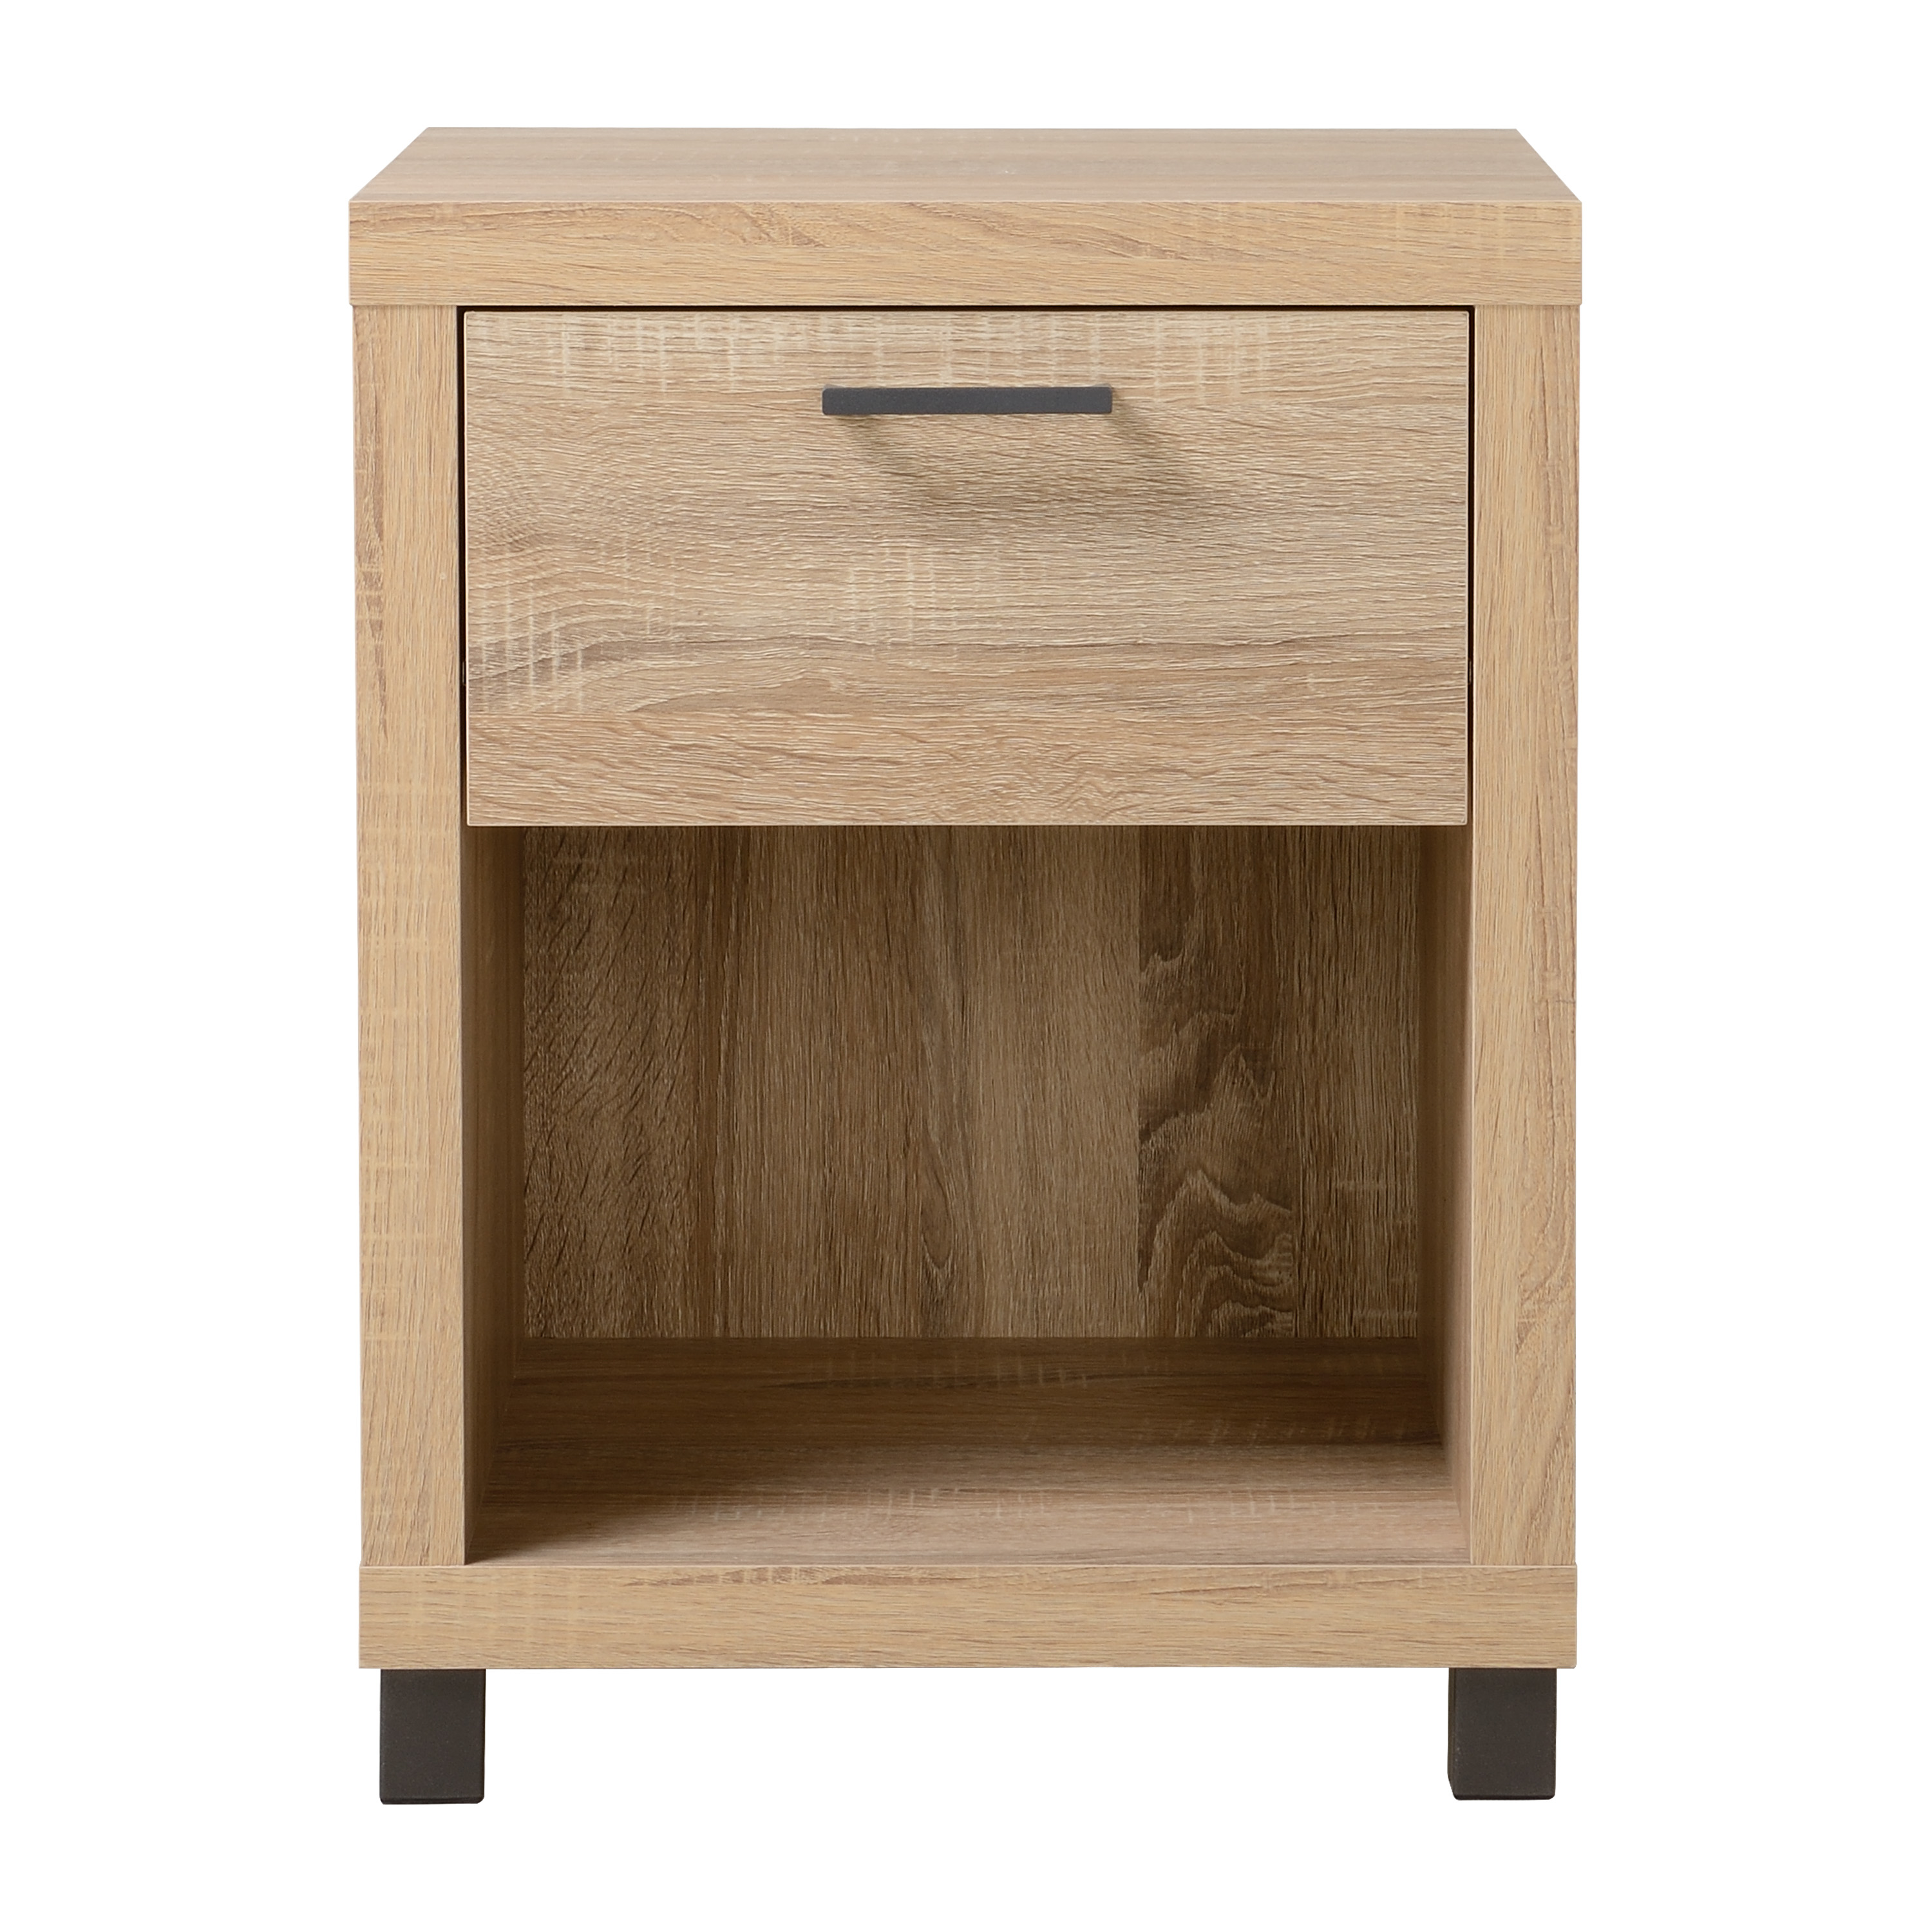 Mainstays Madison Collection 1 Drawer Nightstand, Multiple Colors by HOMESTAR NORTH AMERICA LLC